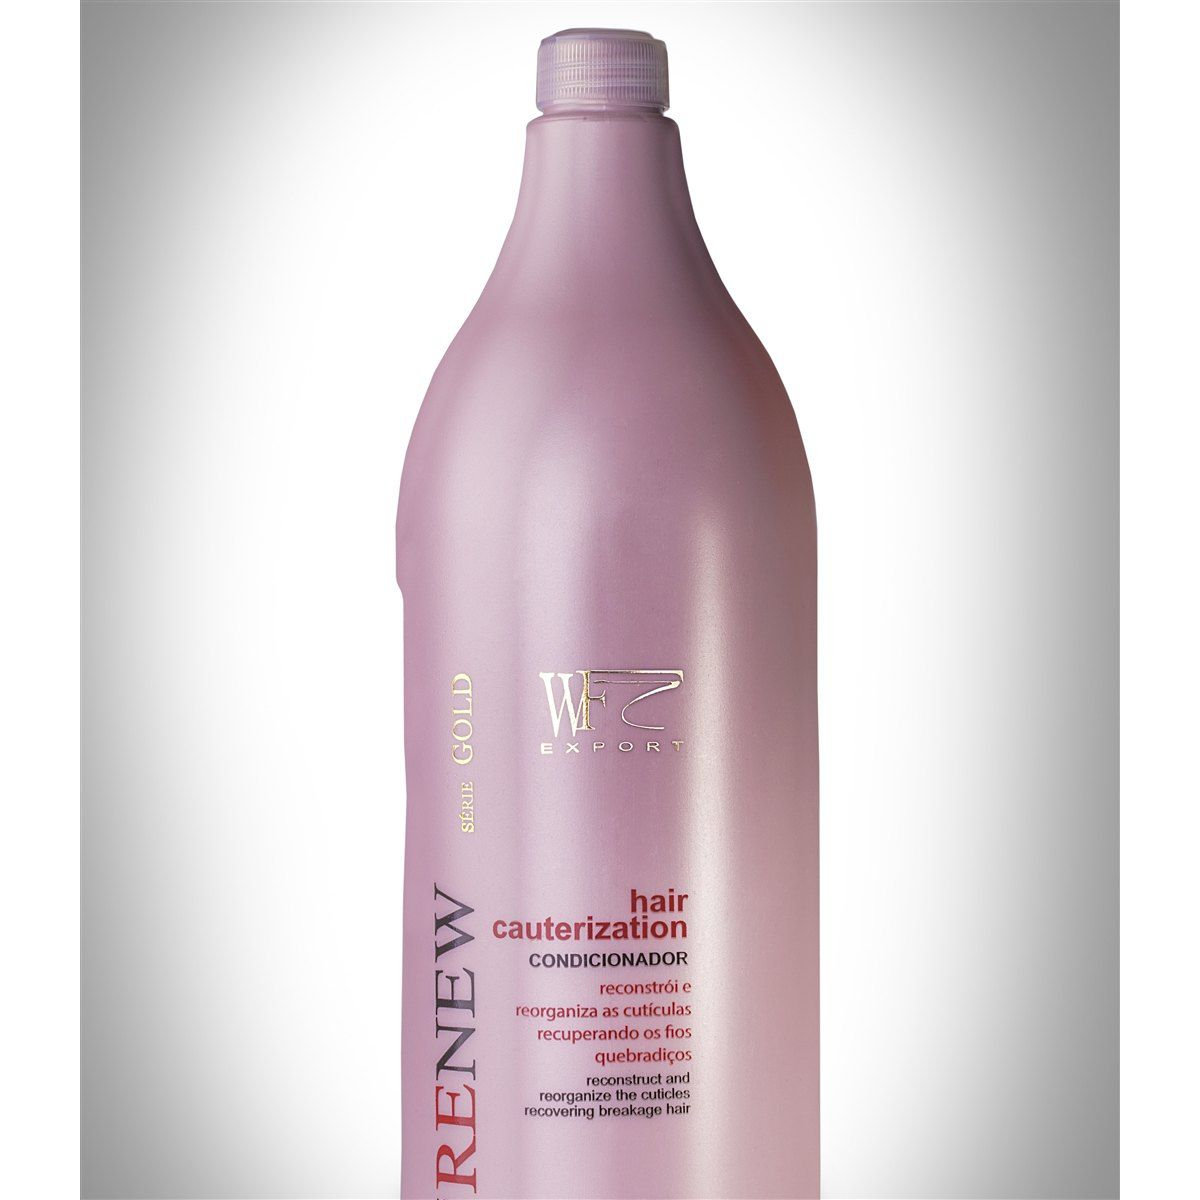 RENEW - CONDICIONADOR HAIR CAUTERIZATION WF COSMETICOS 1L